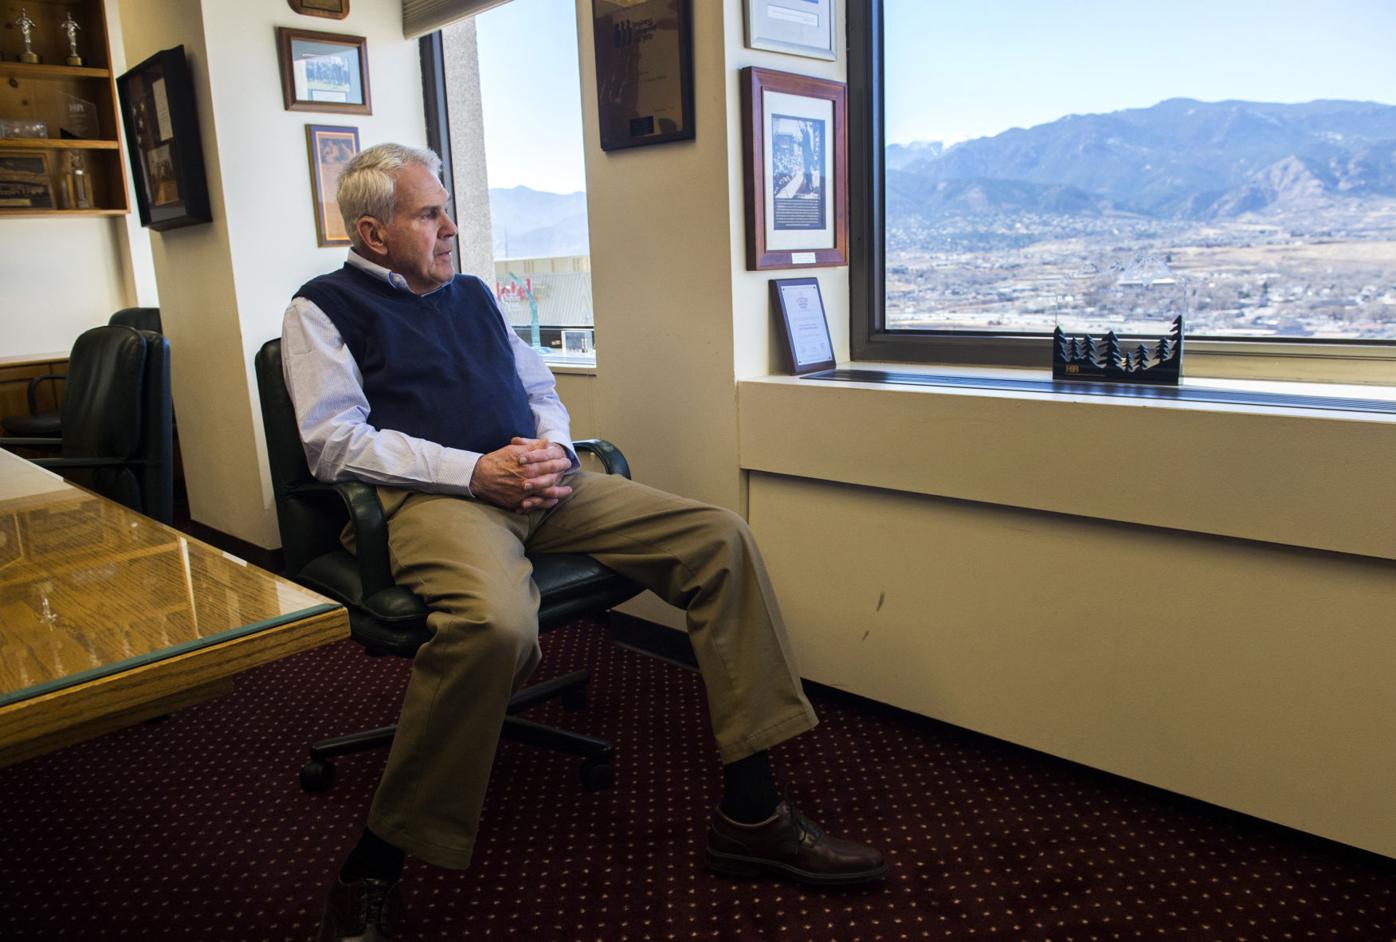 Developer Steve Schuck looks out his office window on the 12th floor of the 1st Bank Building in downtown Colorado Springs Friday, March 4, 2017. Schuck envisioned southeast Colorado Springs becoming a gateway to the city's airport and an industrial and research and development hub when he started building in the area. (The Gazette, Christian Murdock)